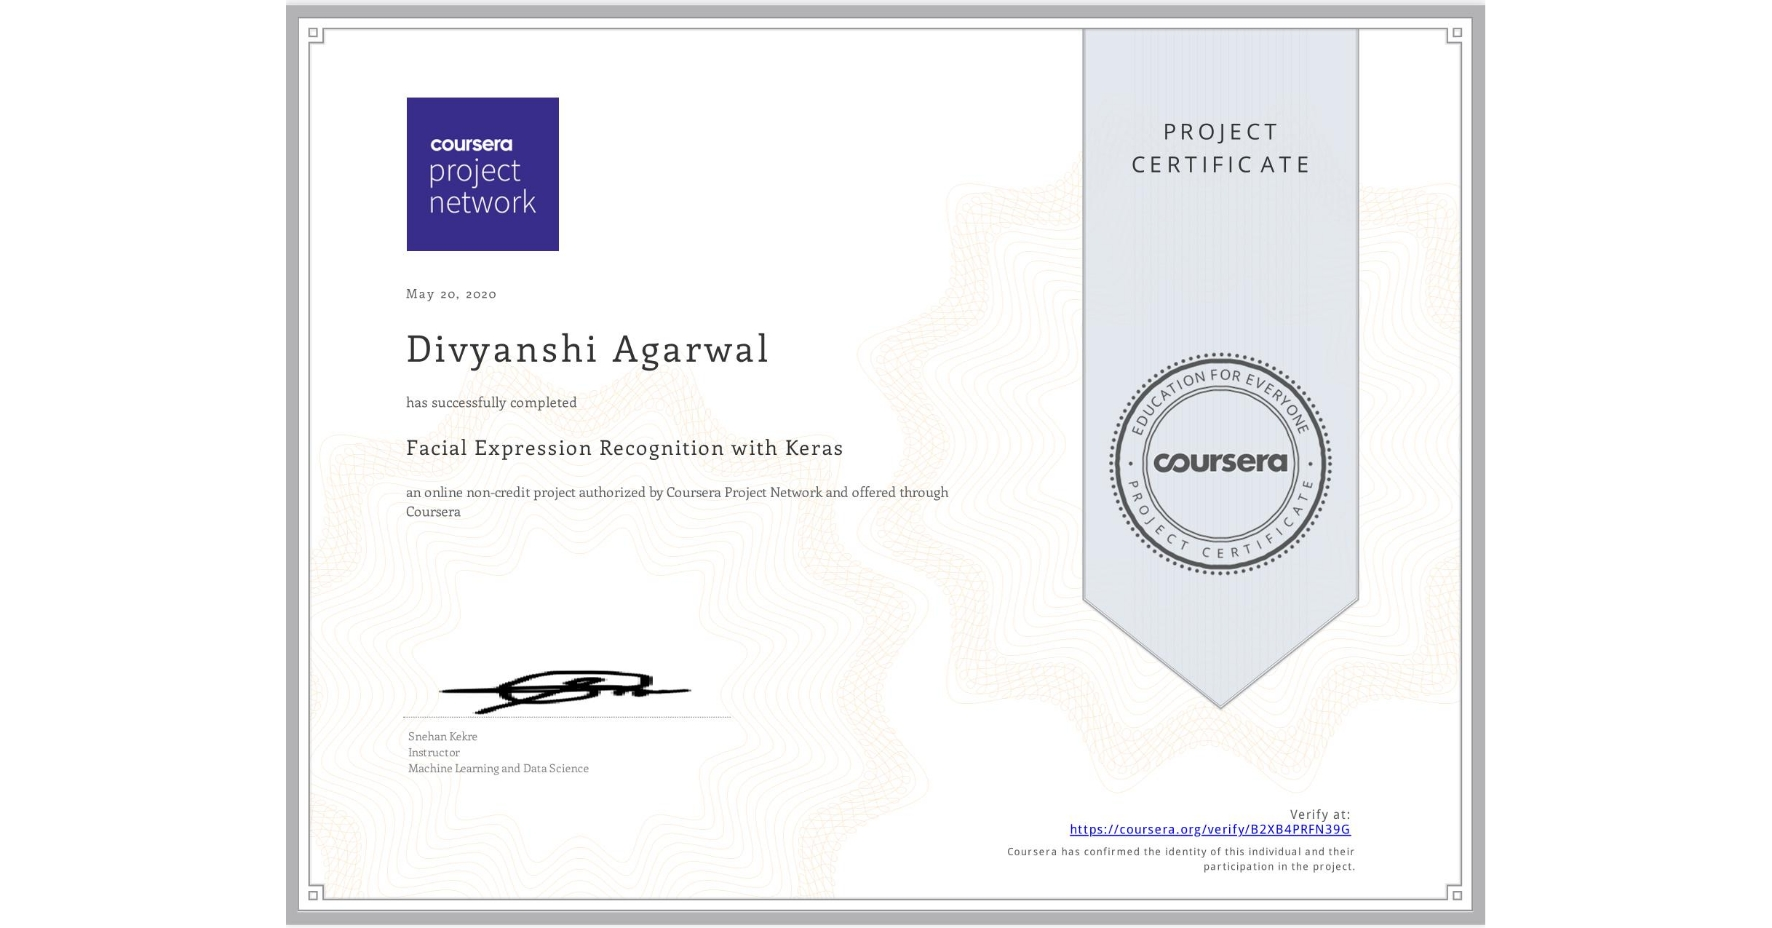 View certificate for Divyanshi Agarwal, Facial Expression Recognition with Keras, an online non-credit course authorized by Coursera Project Network and offered through Coursera